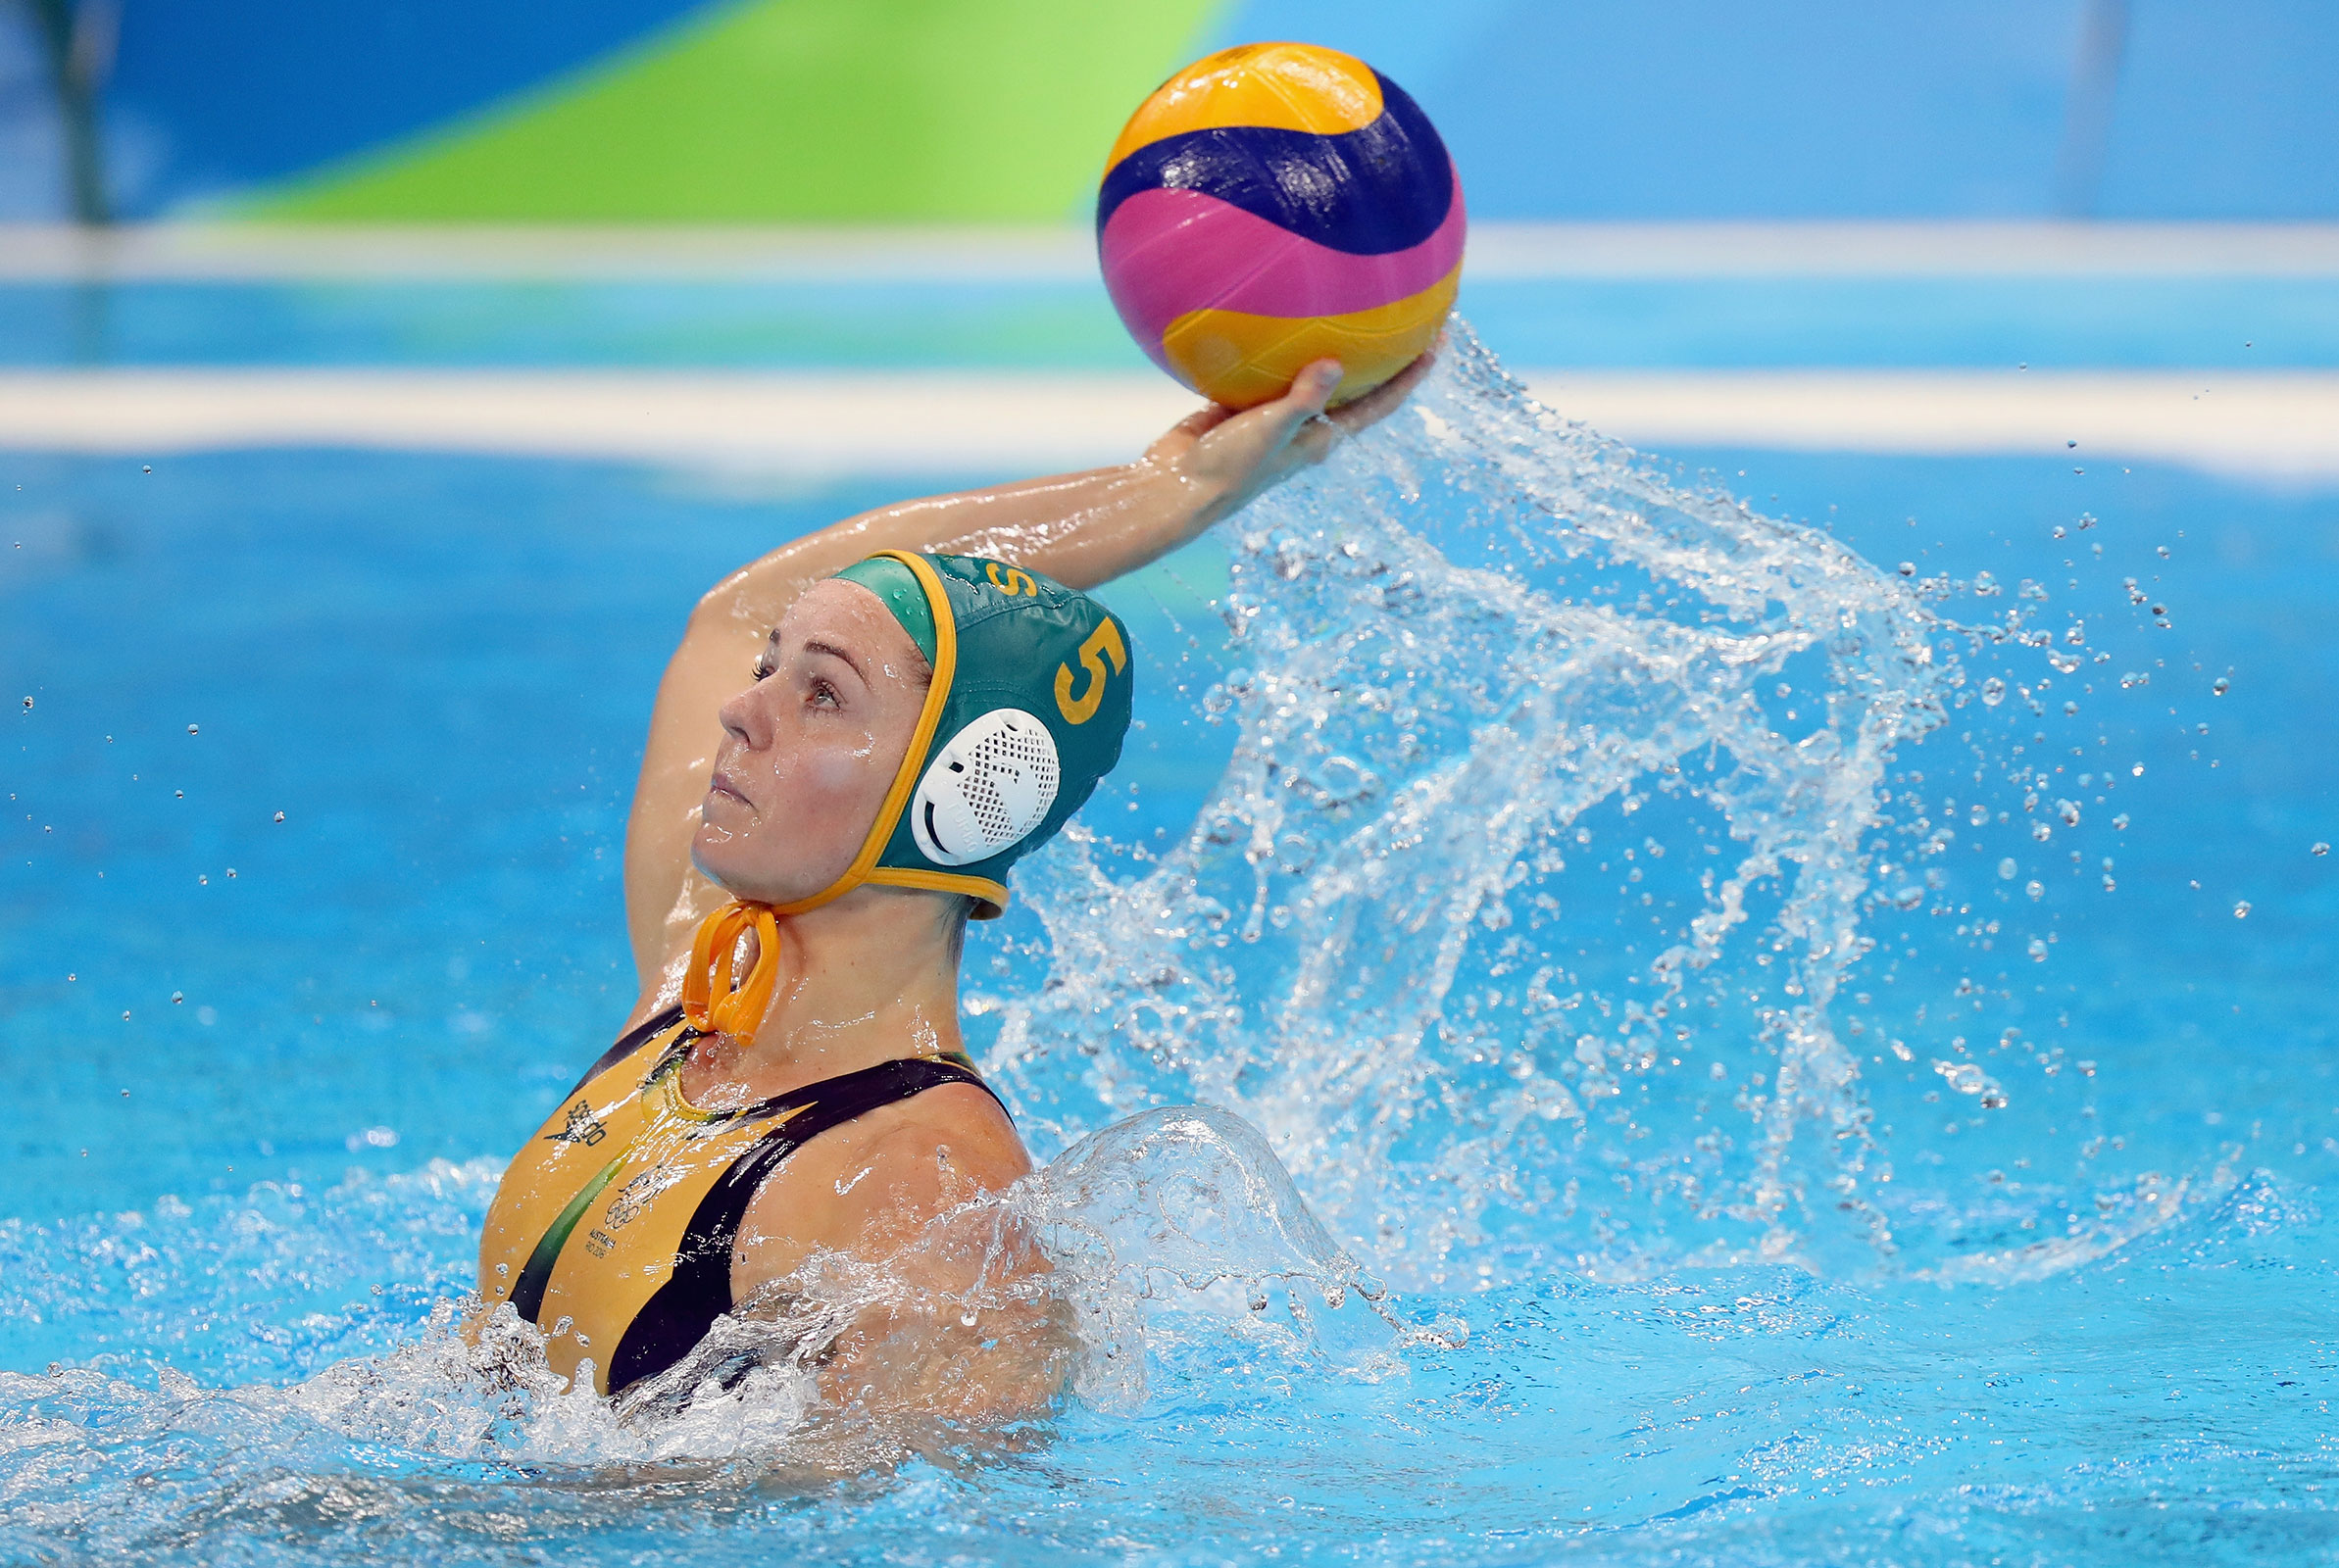 Water Polo training